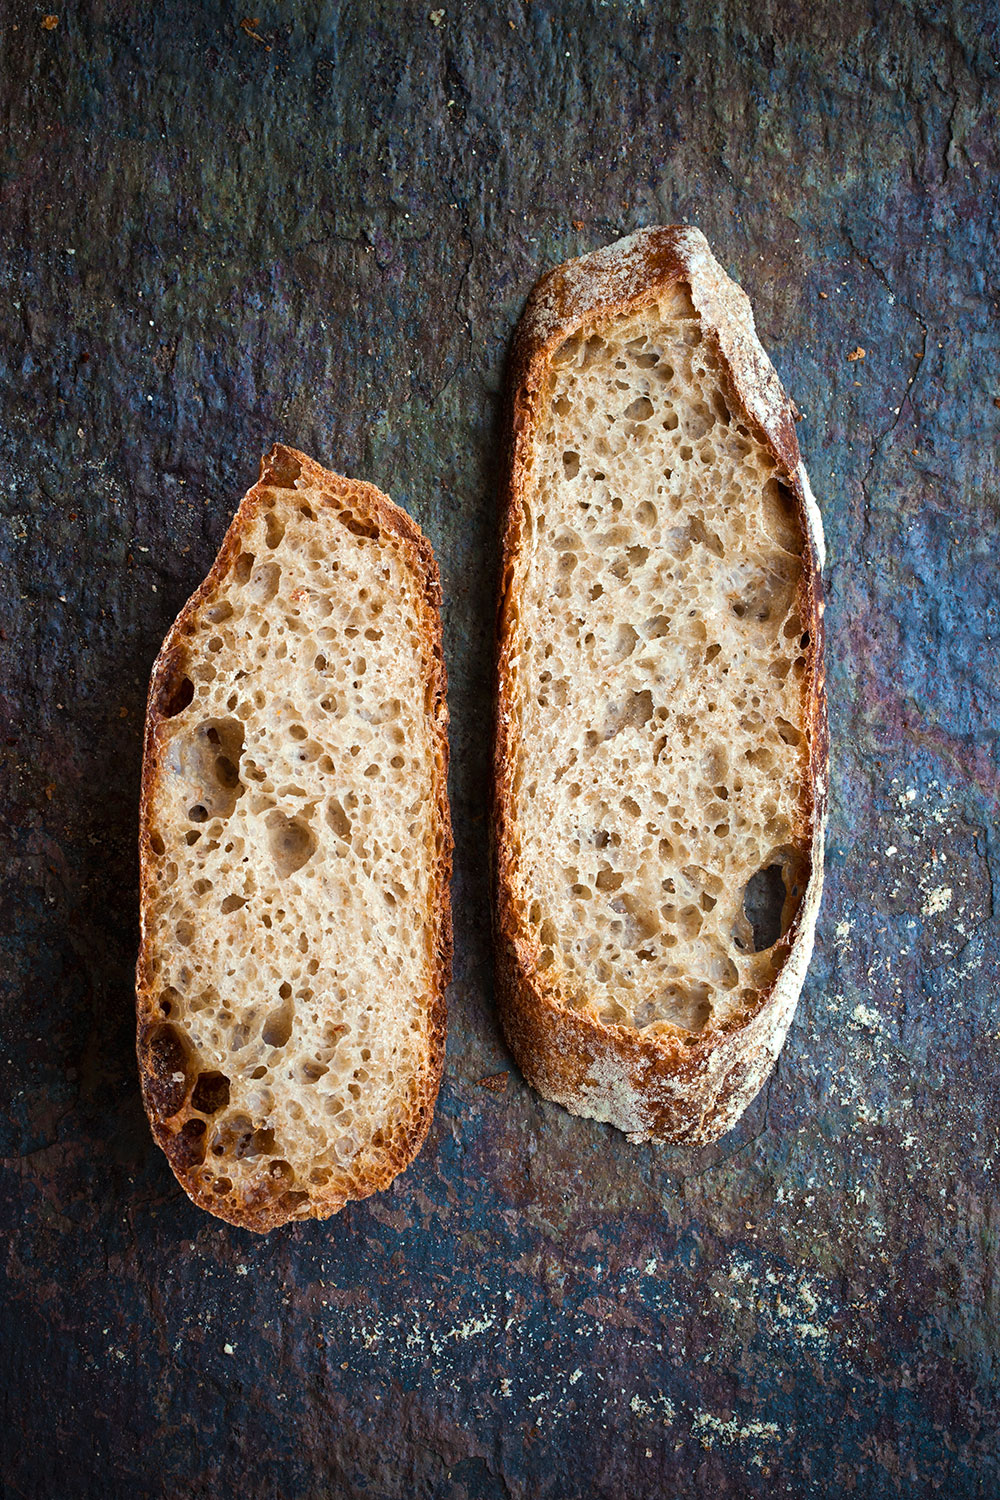 Tartine's Basic Sourdough Country Bread Slices